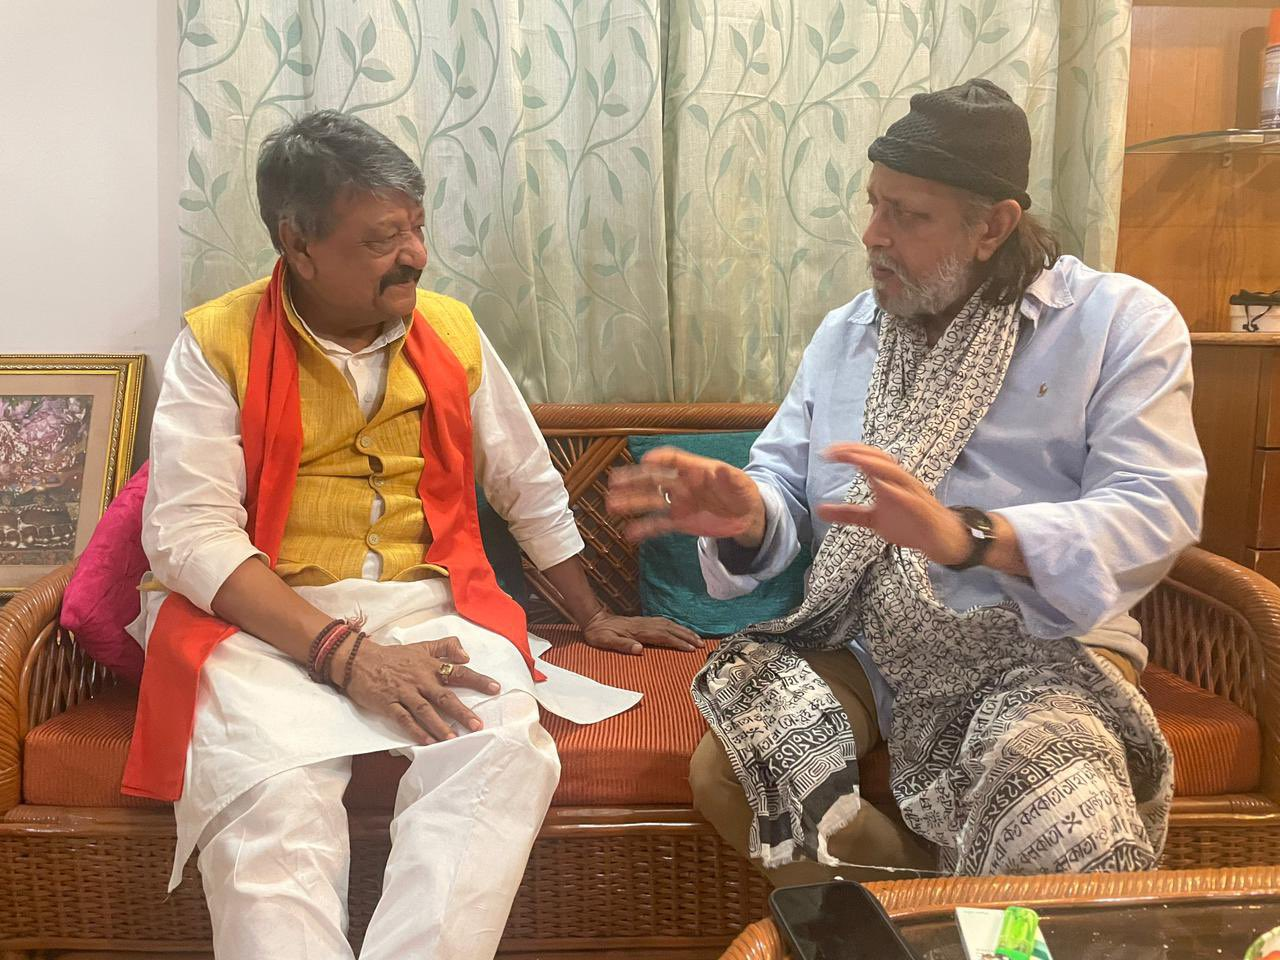 BJP's Kailash Vijayvargiya meets actor Mithun Chakraborty